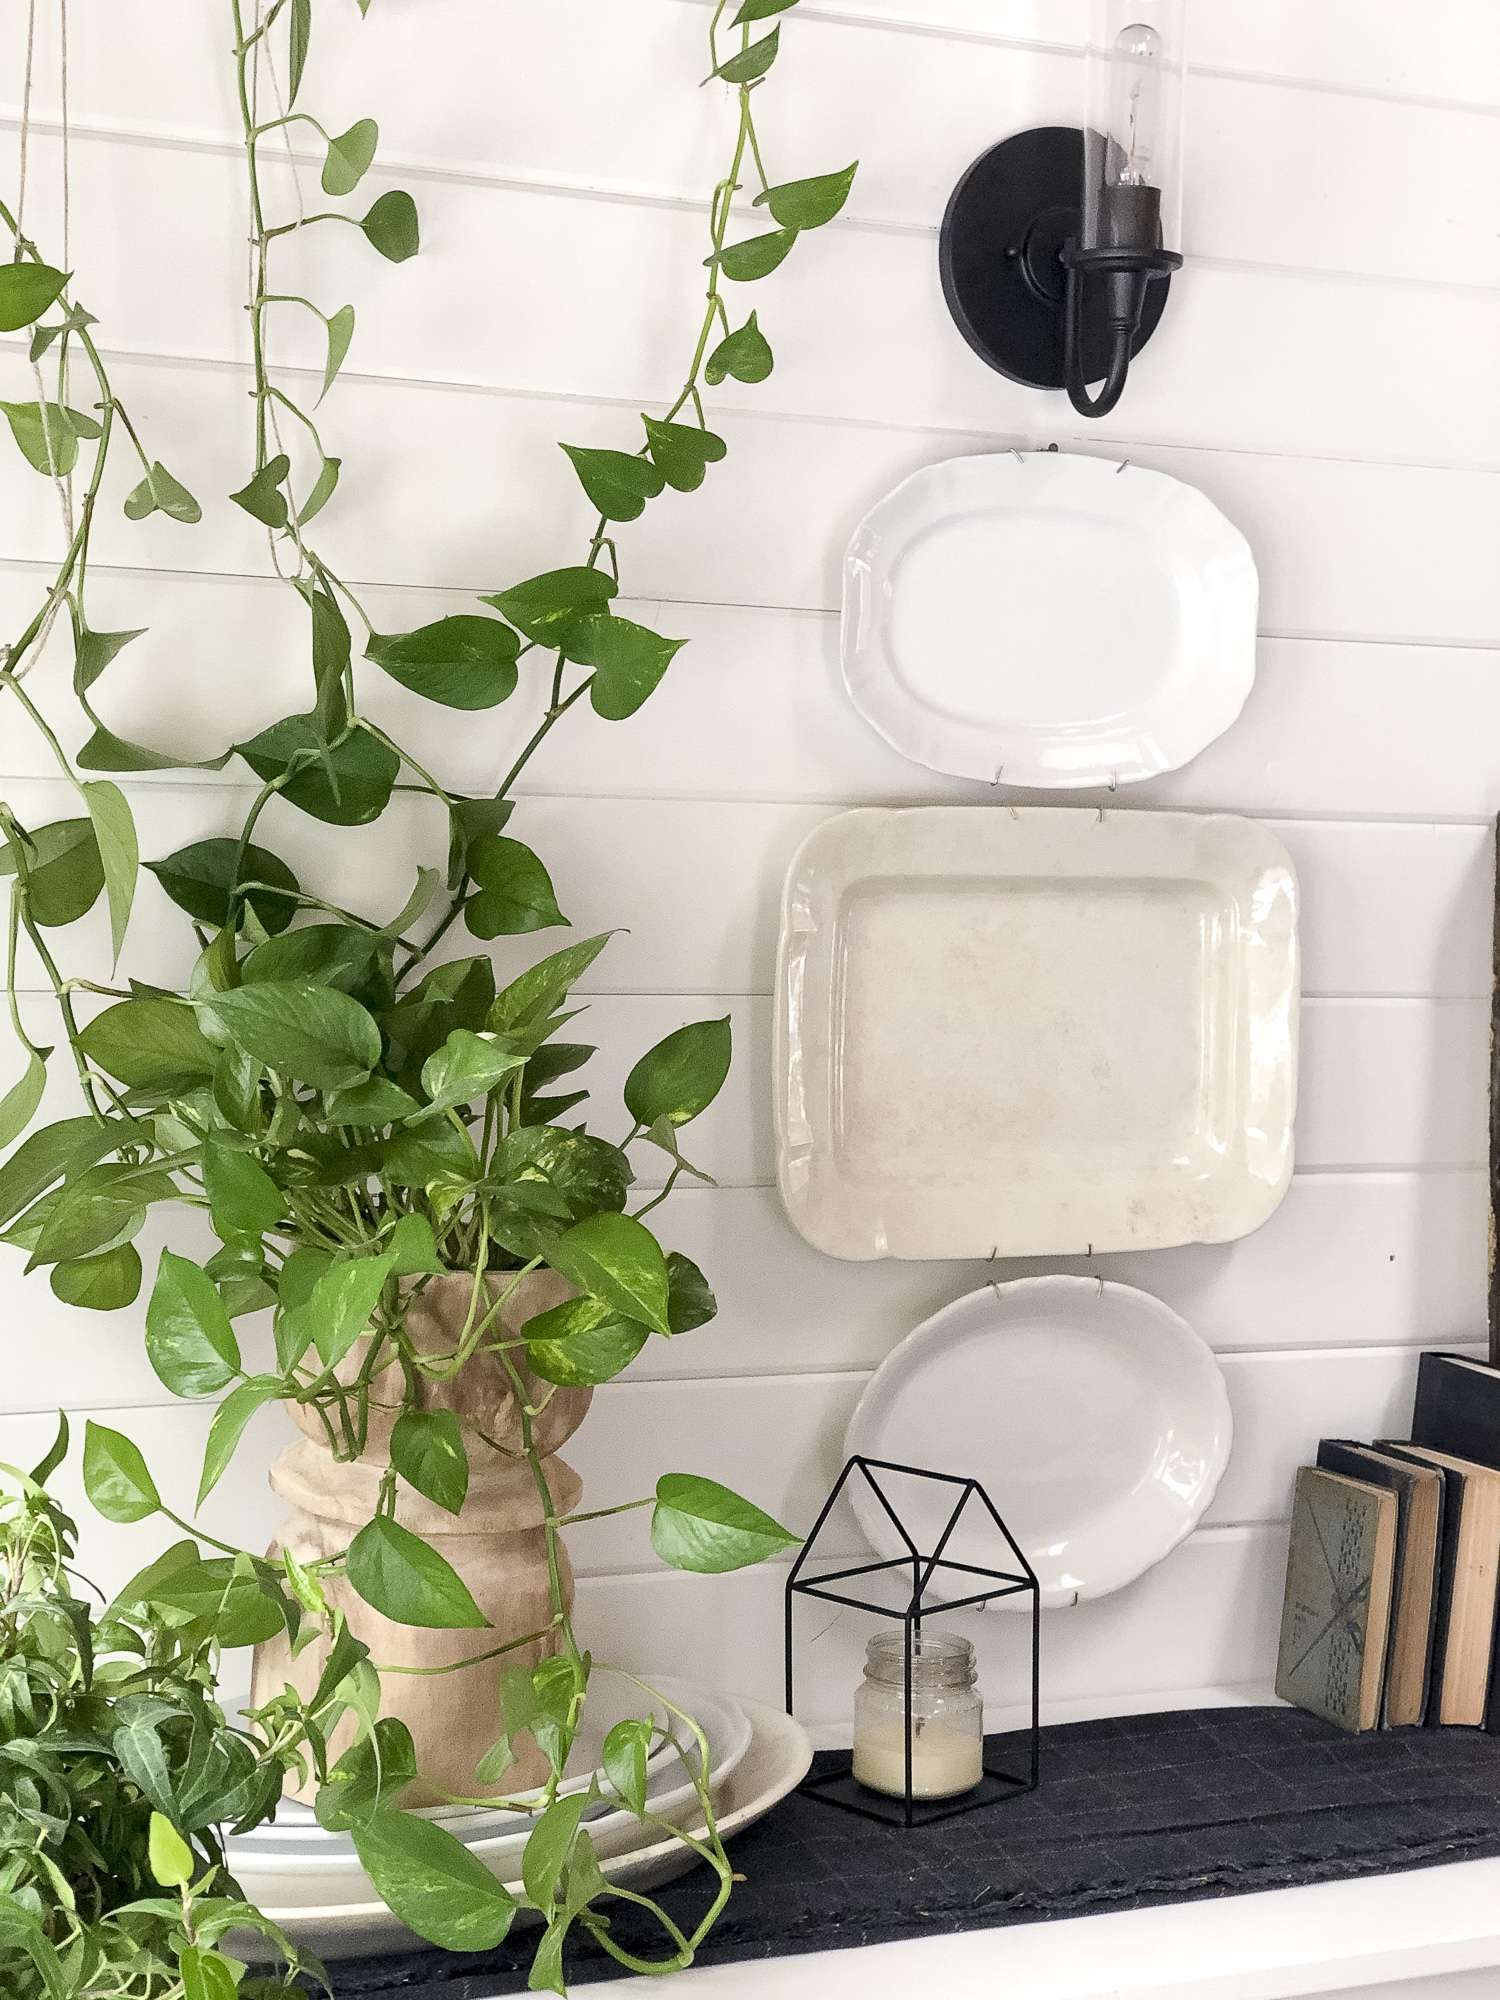 Are you looking for unique ways to warm up your winter decor? Read more about how I created this vertical garden with my winter buffet decor. #fromhousetohaven #verticalgarden #modernfarmhouse #plantlady